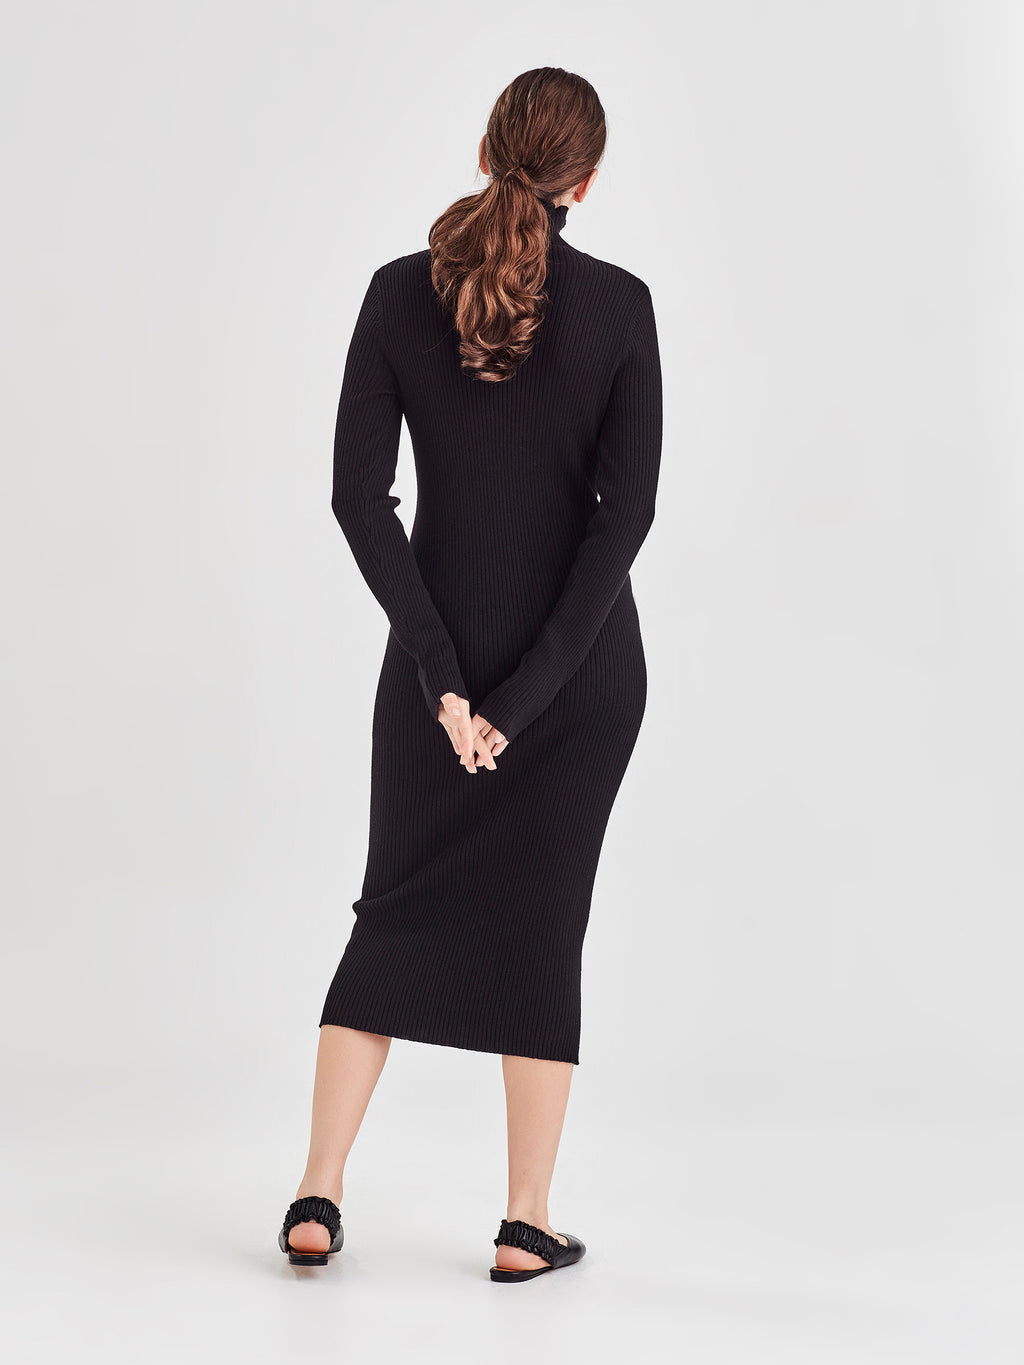 Apres Rib Dress (Cotton Cash Rib) Black